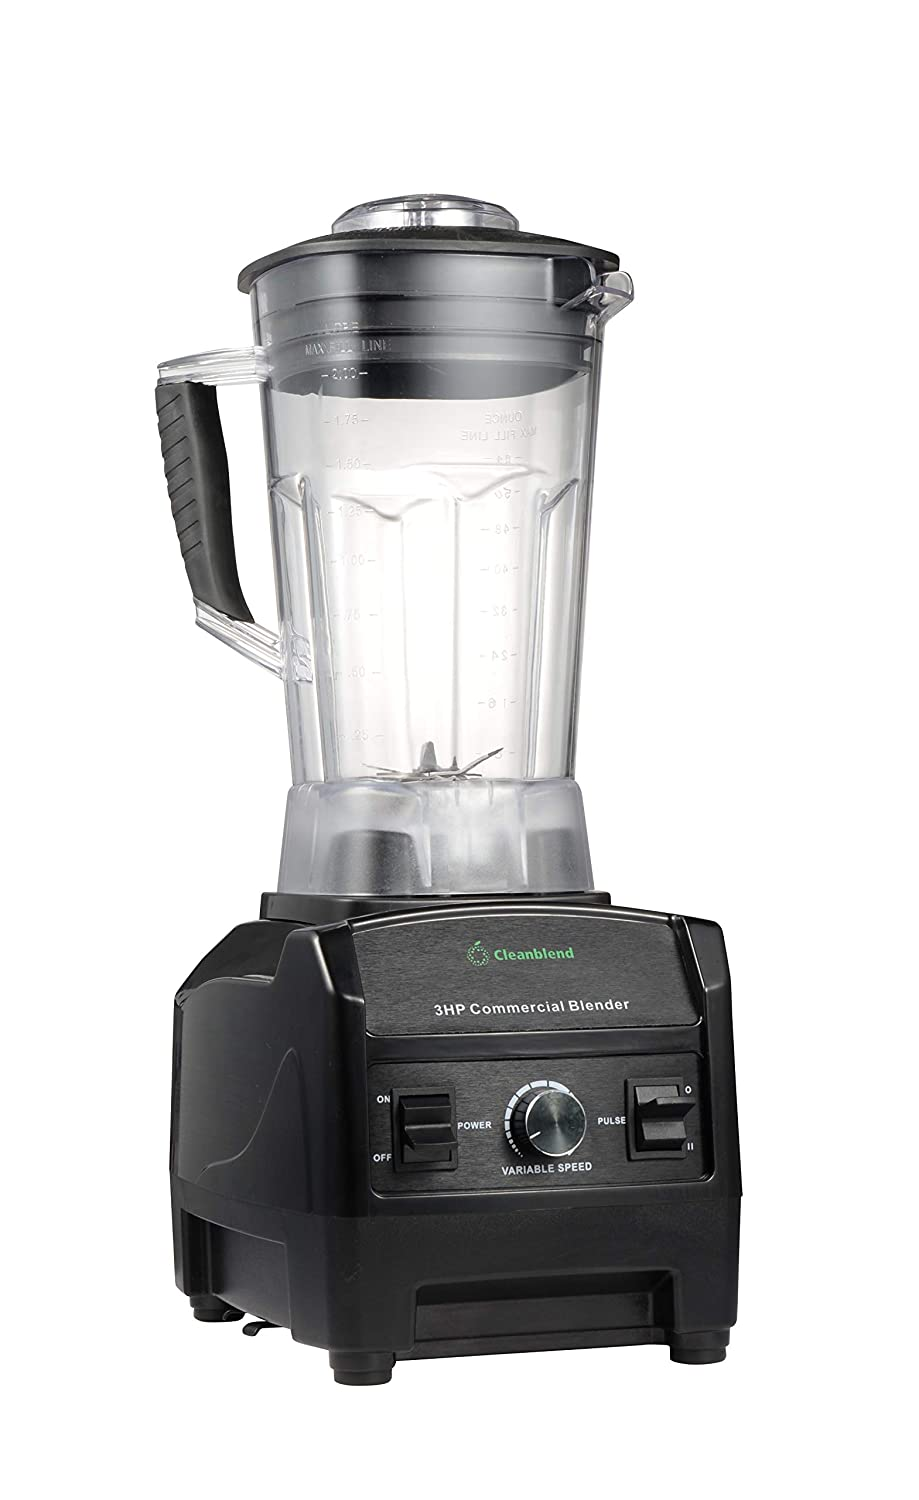 Blender By Cleanblend: Commercial Blender, Mixer, Smoothie Blender, 64 Ounce BPA Free Container, Stainless Steel 8 Blade Assembly, Variable Speed, Pulse, Tamper, Nut Milk Bag, Spatula, 3 HP 1800 Watts 2001